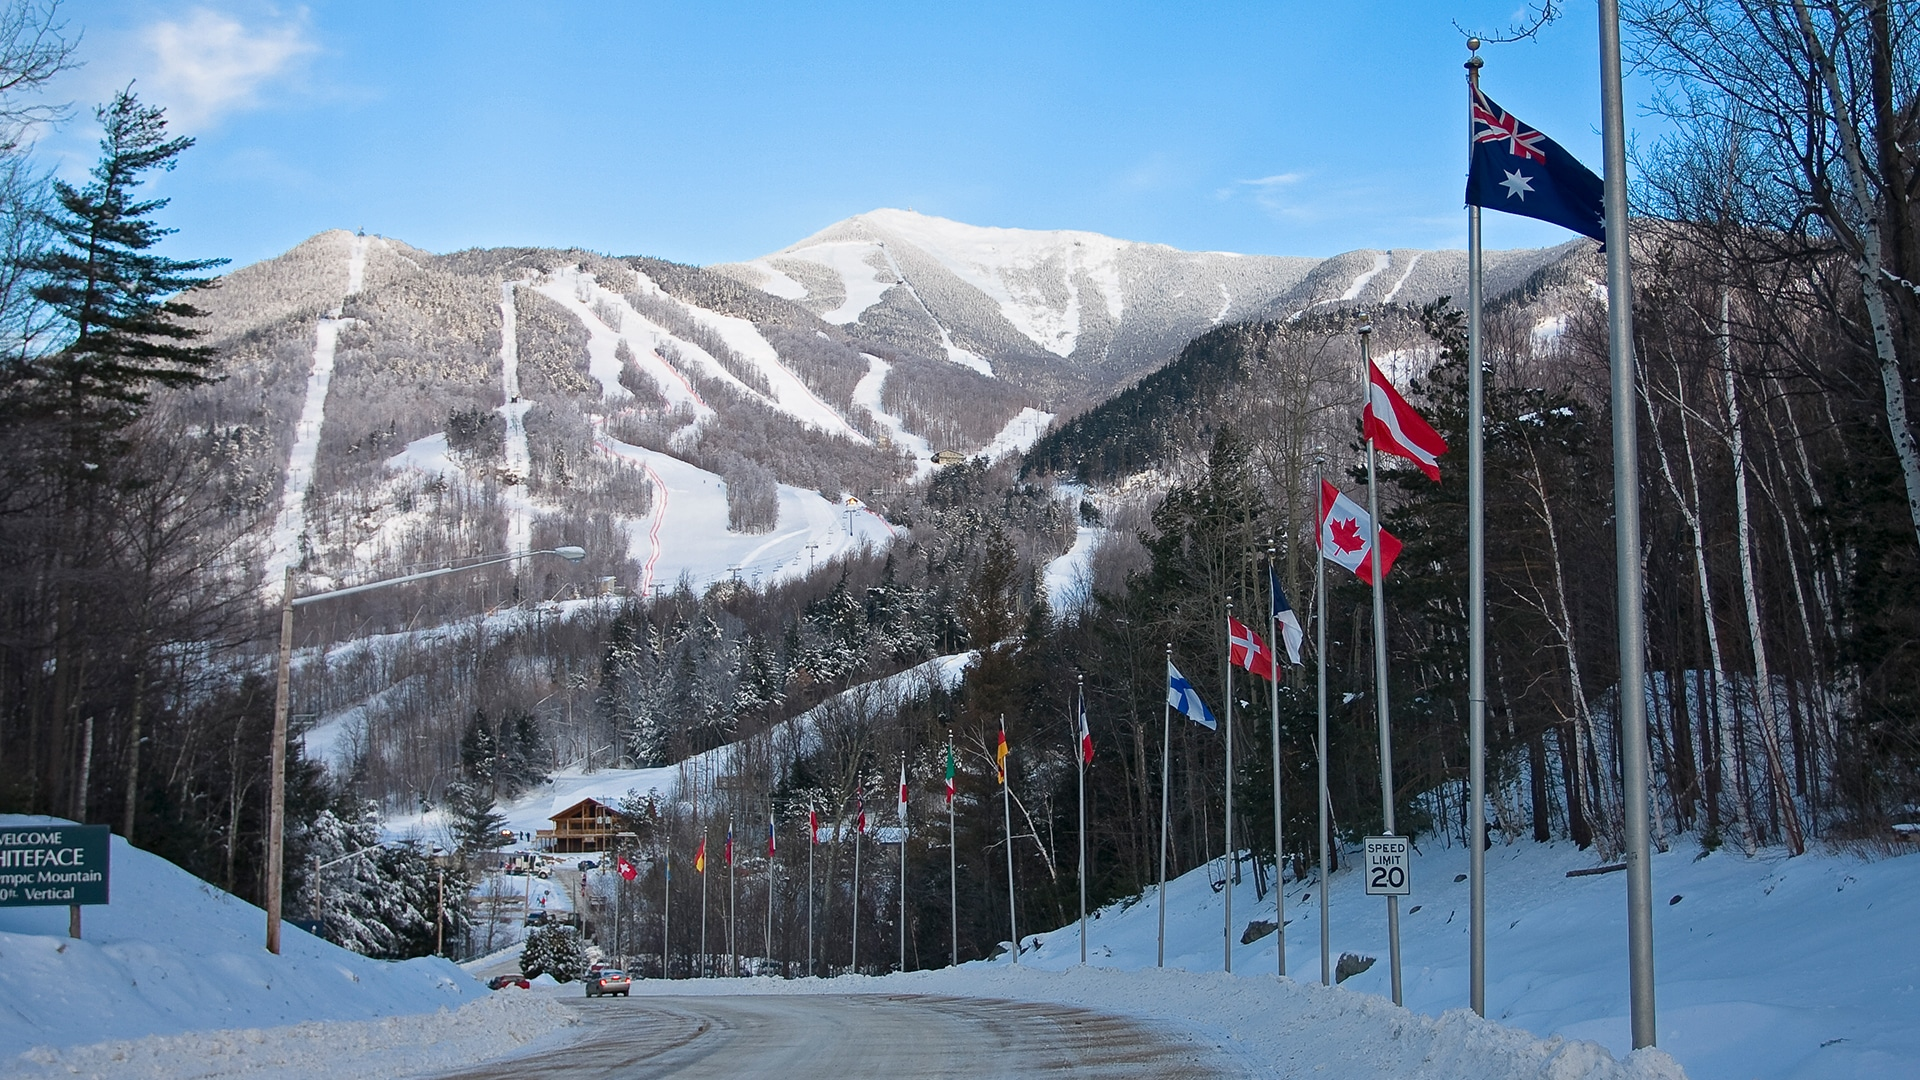 A series of flags of different nations line the road leading to Whiteface Mountain ski resort